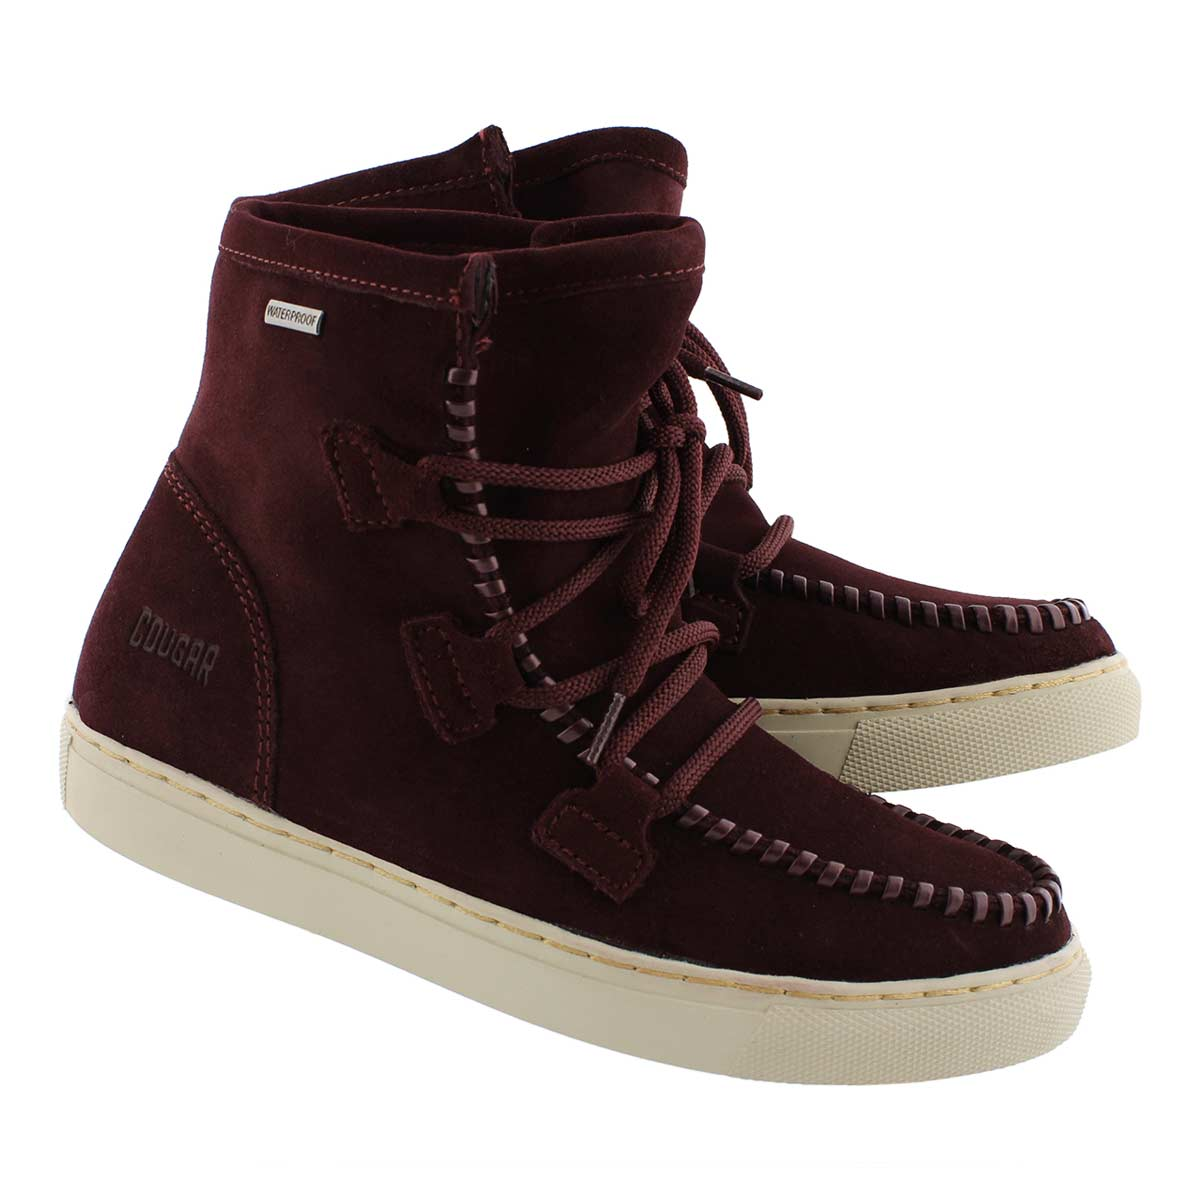 Lds Fabiola wine wtpf lace up ankle boot